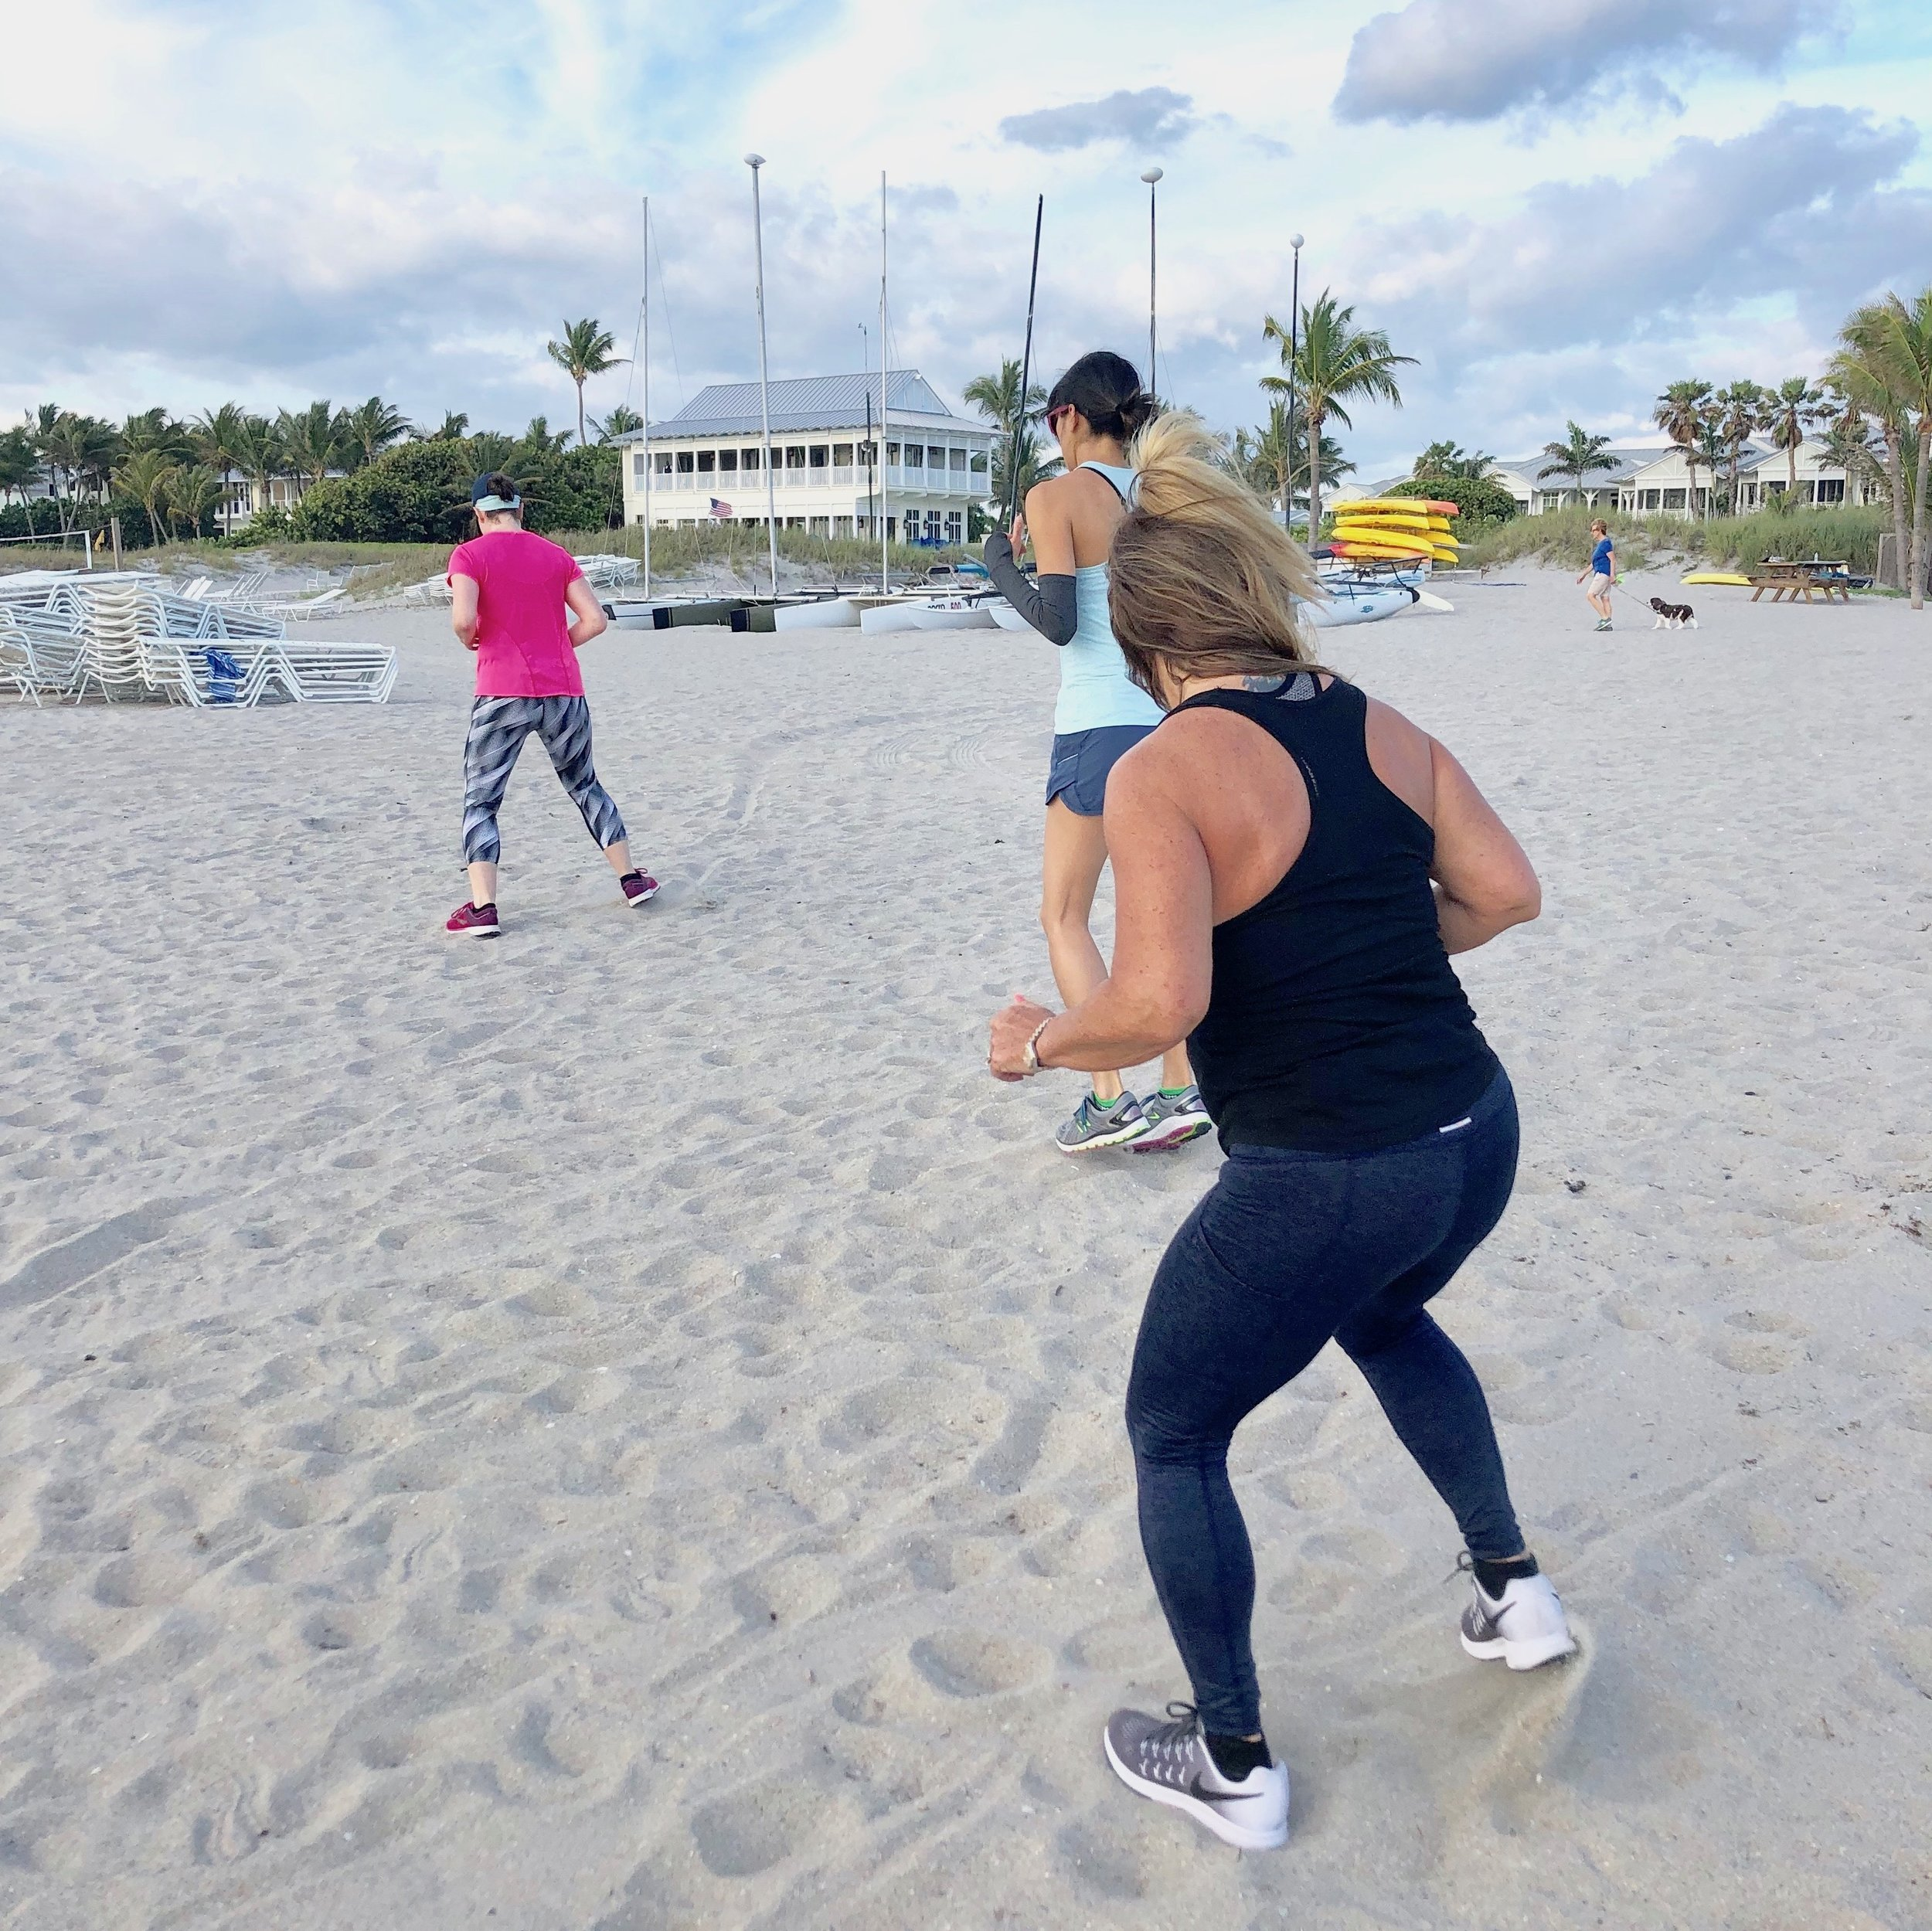 Vita boot camp guests do cardio at the beach.